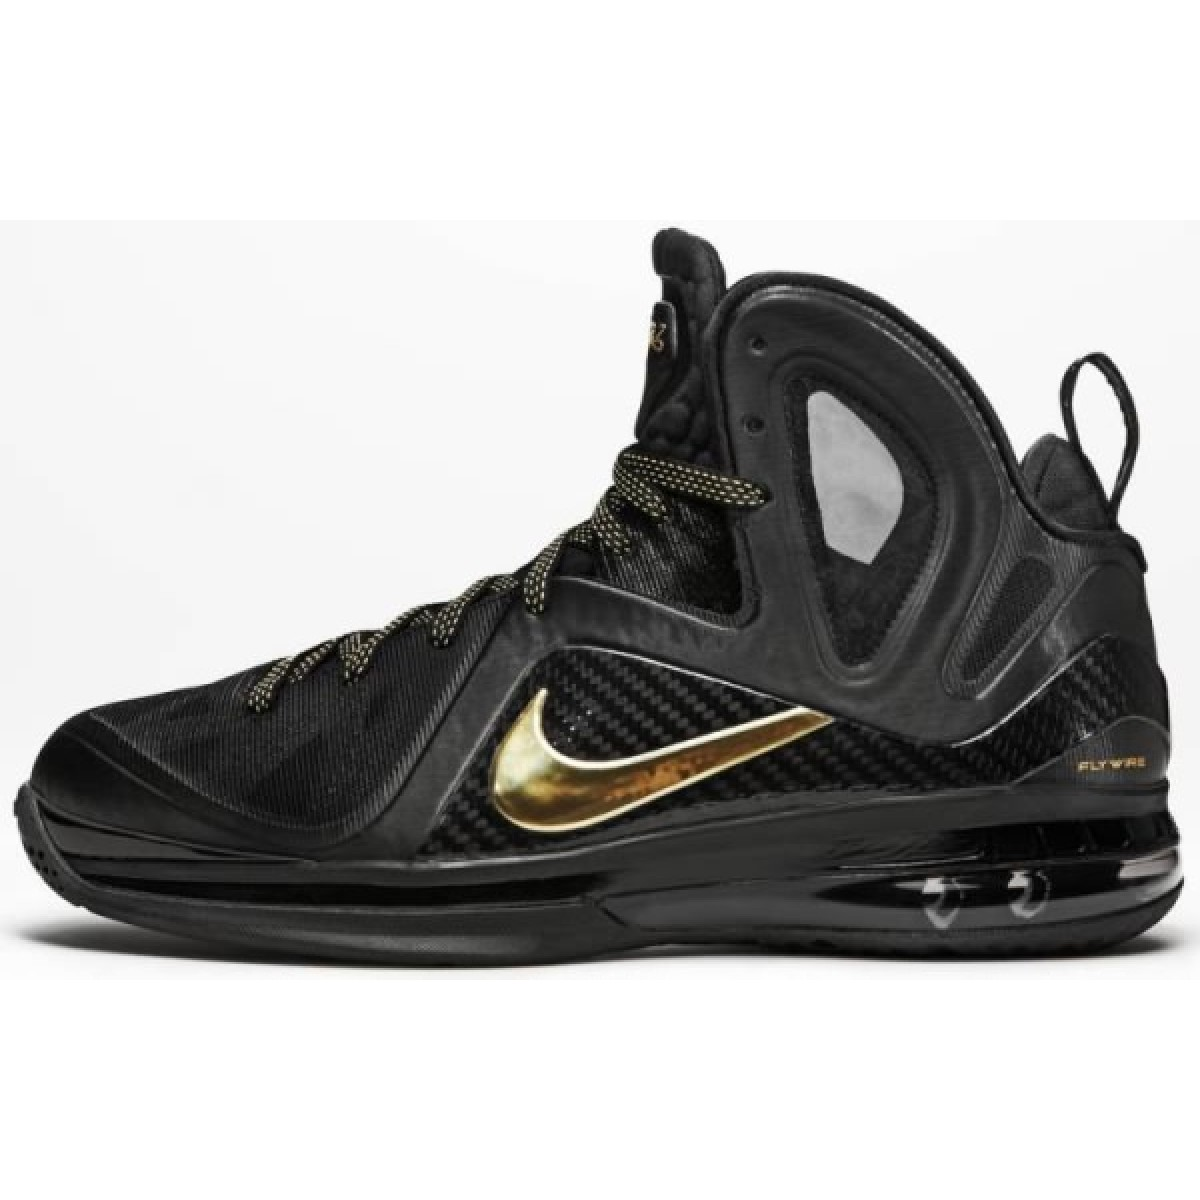 Nike Lebron 11 Air Max Black Gold Basketball Shoes